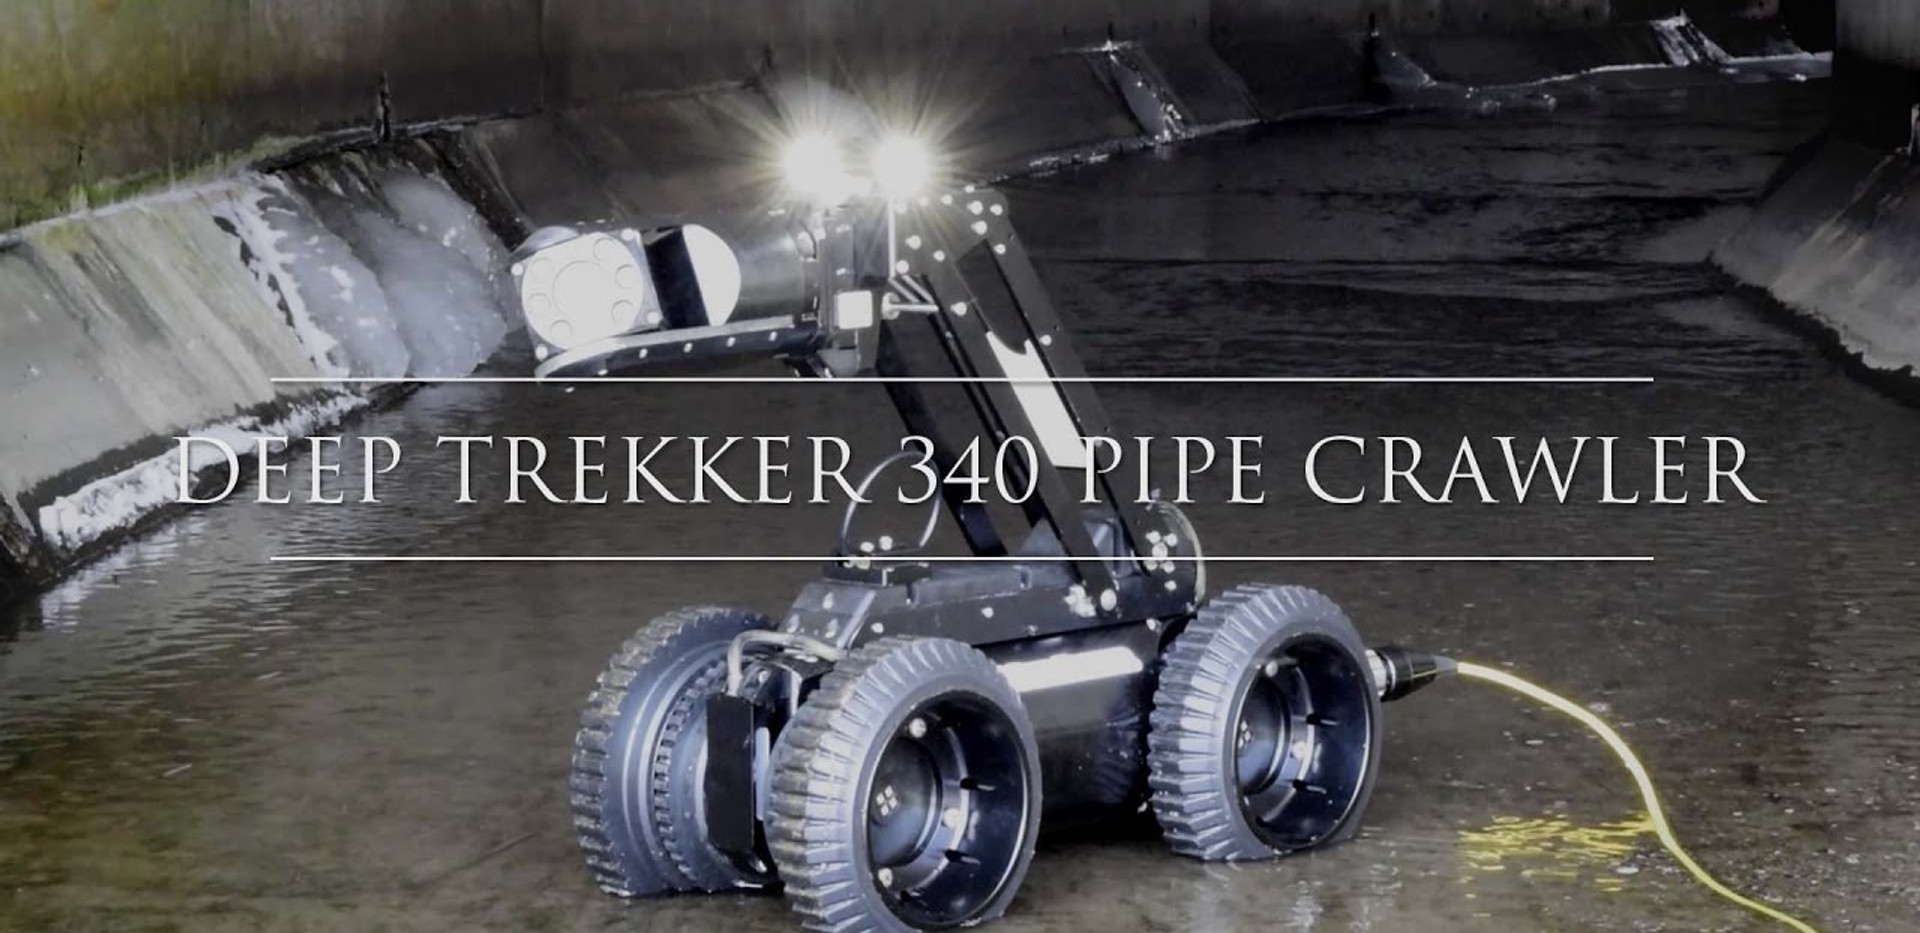 Pipe Crawler Introduction